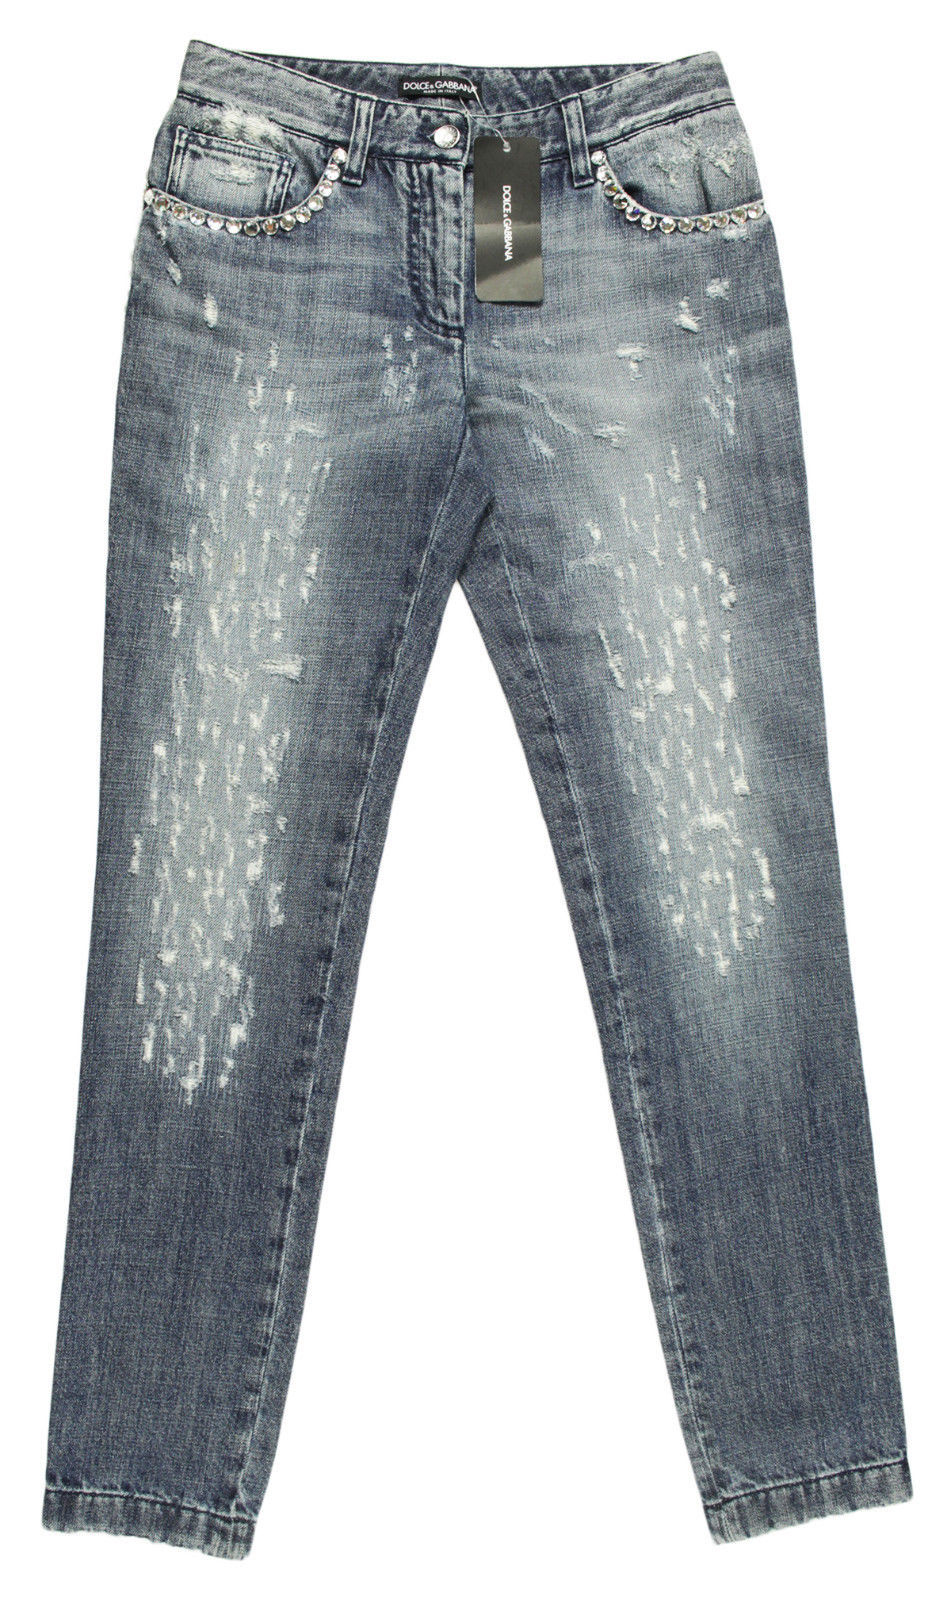 Primary image for NEW WOMENS DOLCE & GABBANA ITALY DISTRESSED SWAROVSKI CRYSTAL JEANS 40 $1795